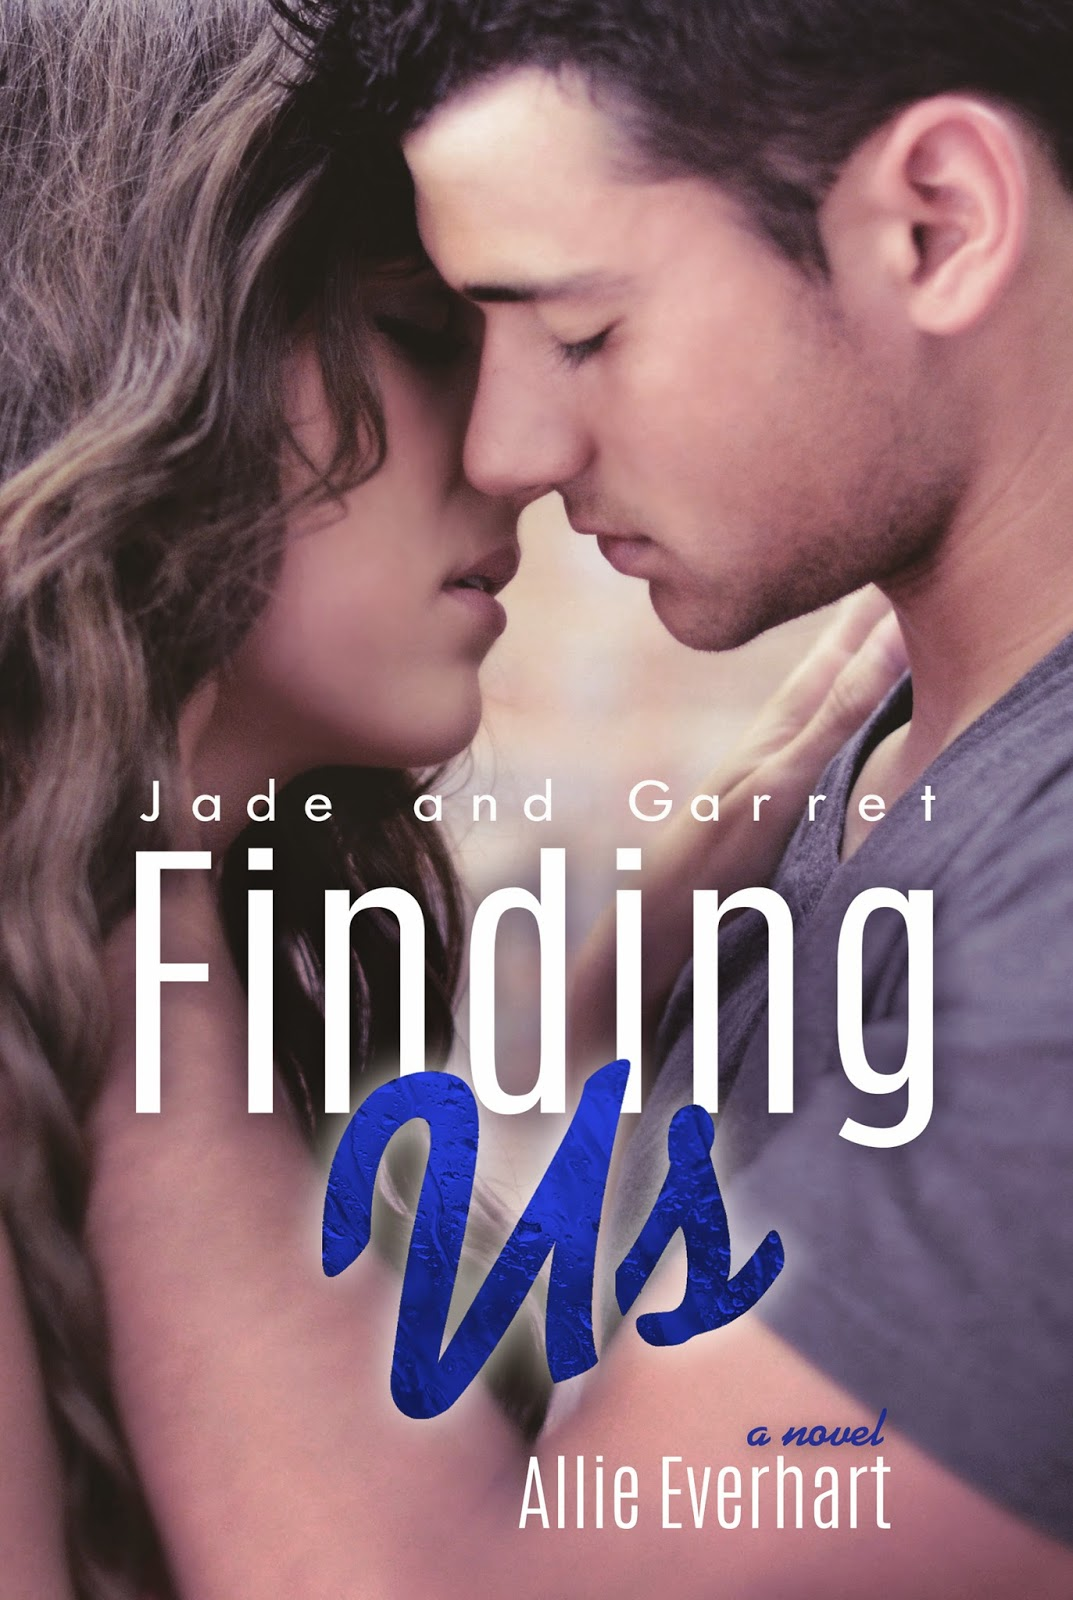 COVER REVEAL: FINDING US by Allie Everhart